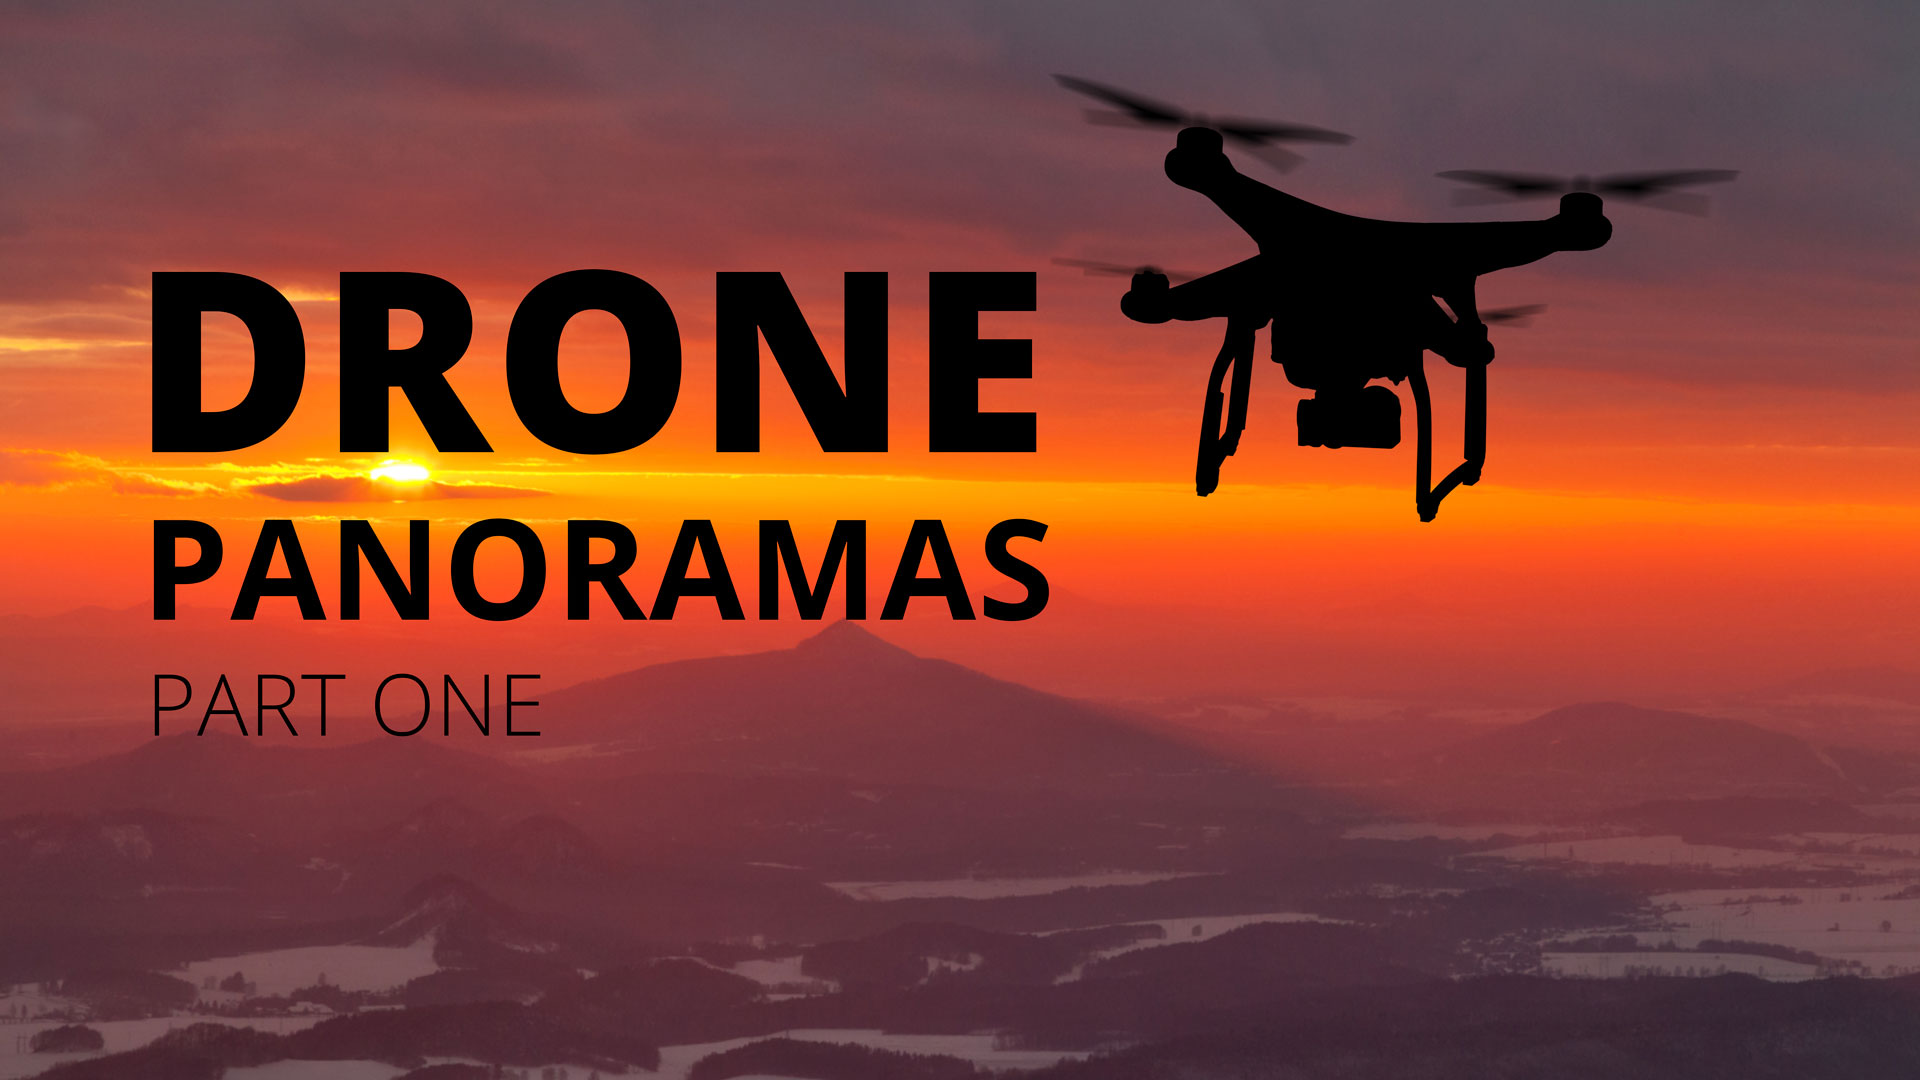 Shooting Panoramic Images from a Drone   Photofocus